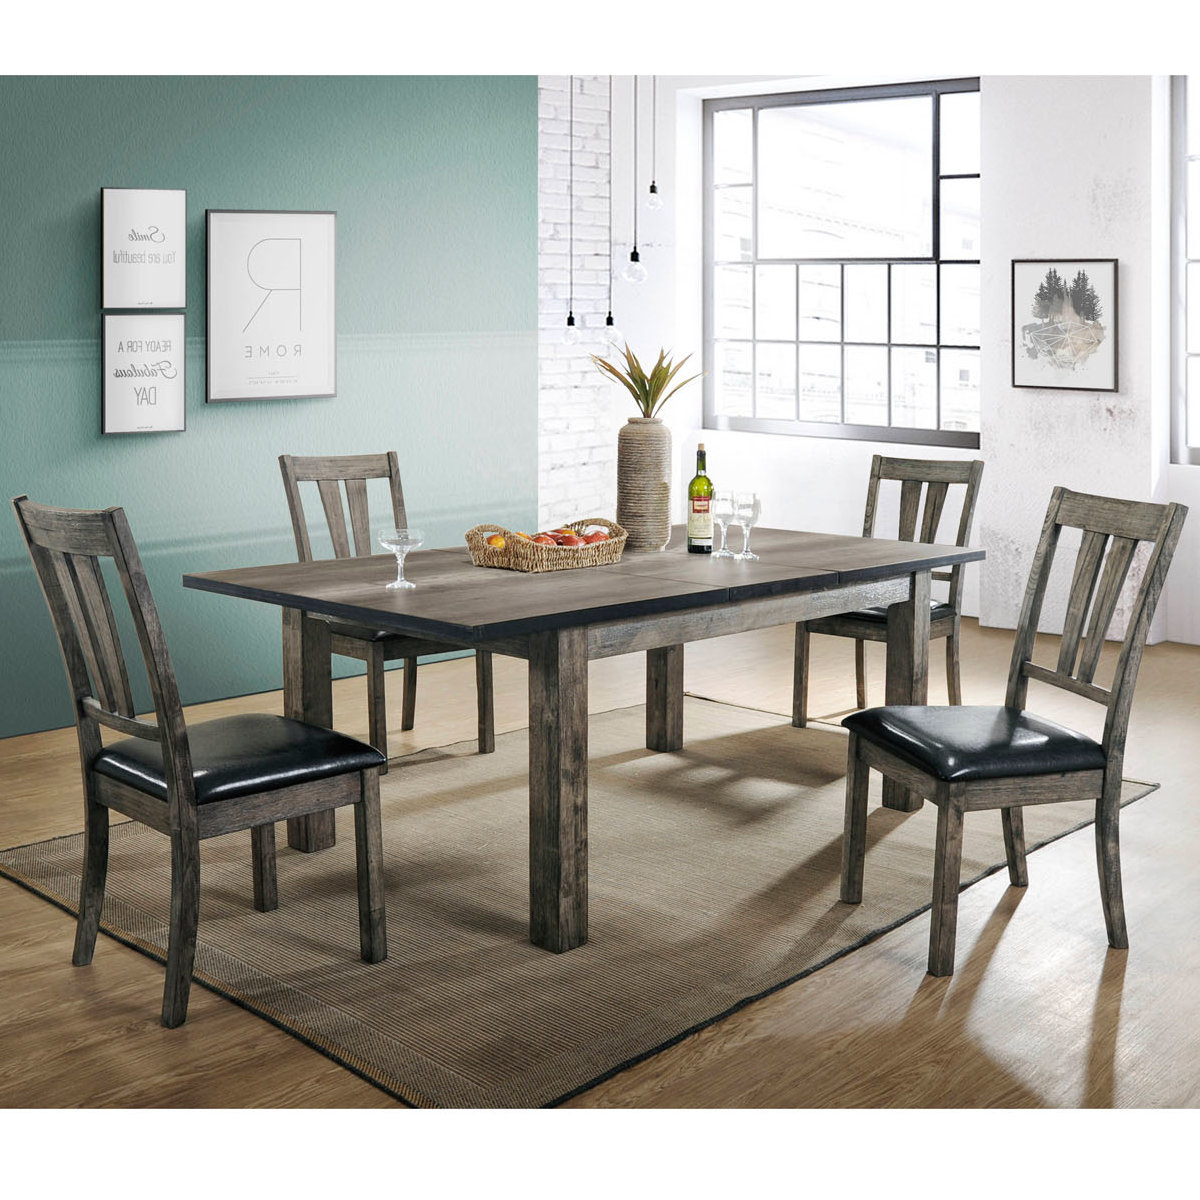 Tejeda 5 Piece Dining Sets Regarding Widely Used Union Rustic Sanda 5 Piece Wood Dining Set (View 7 of 25)